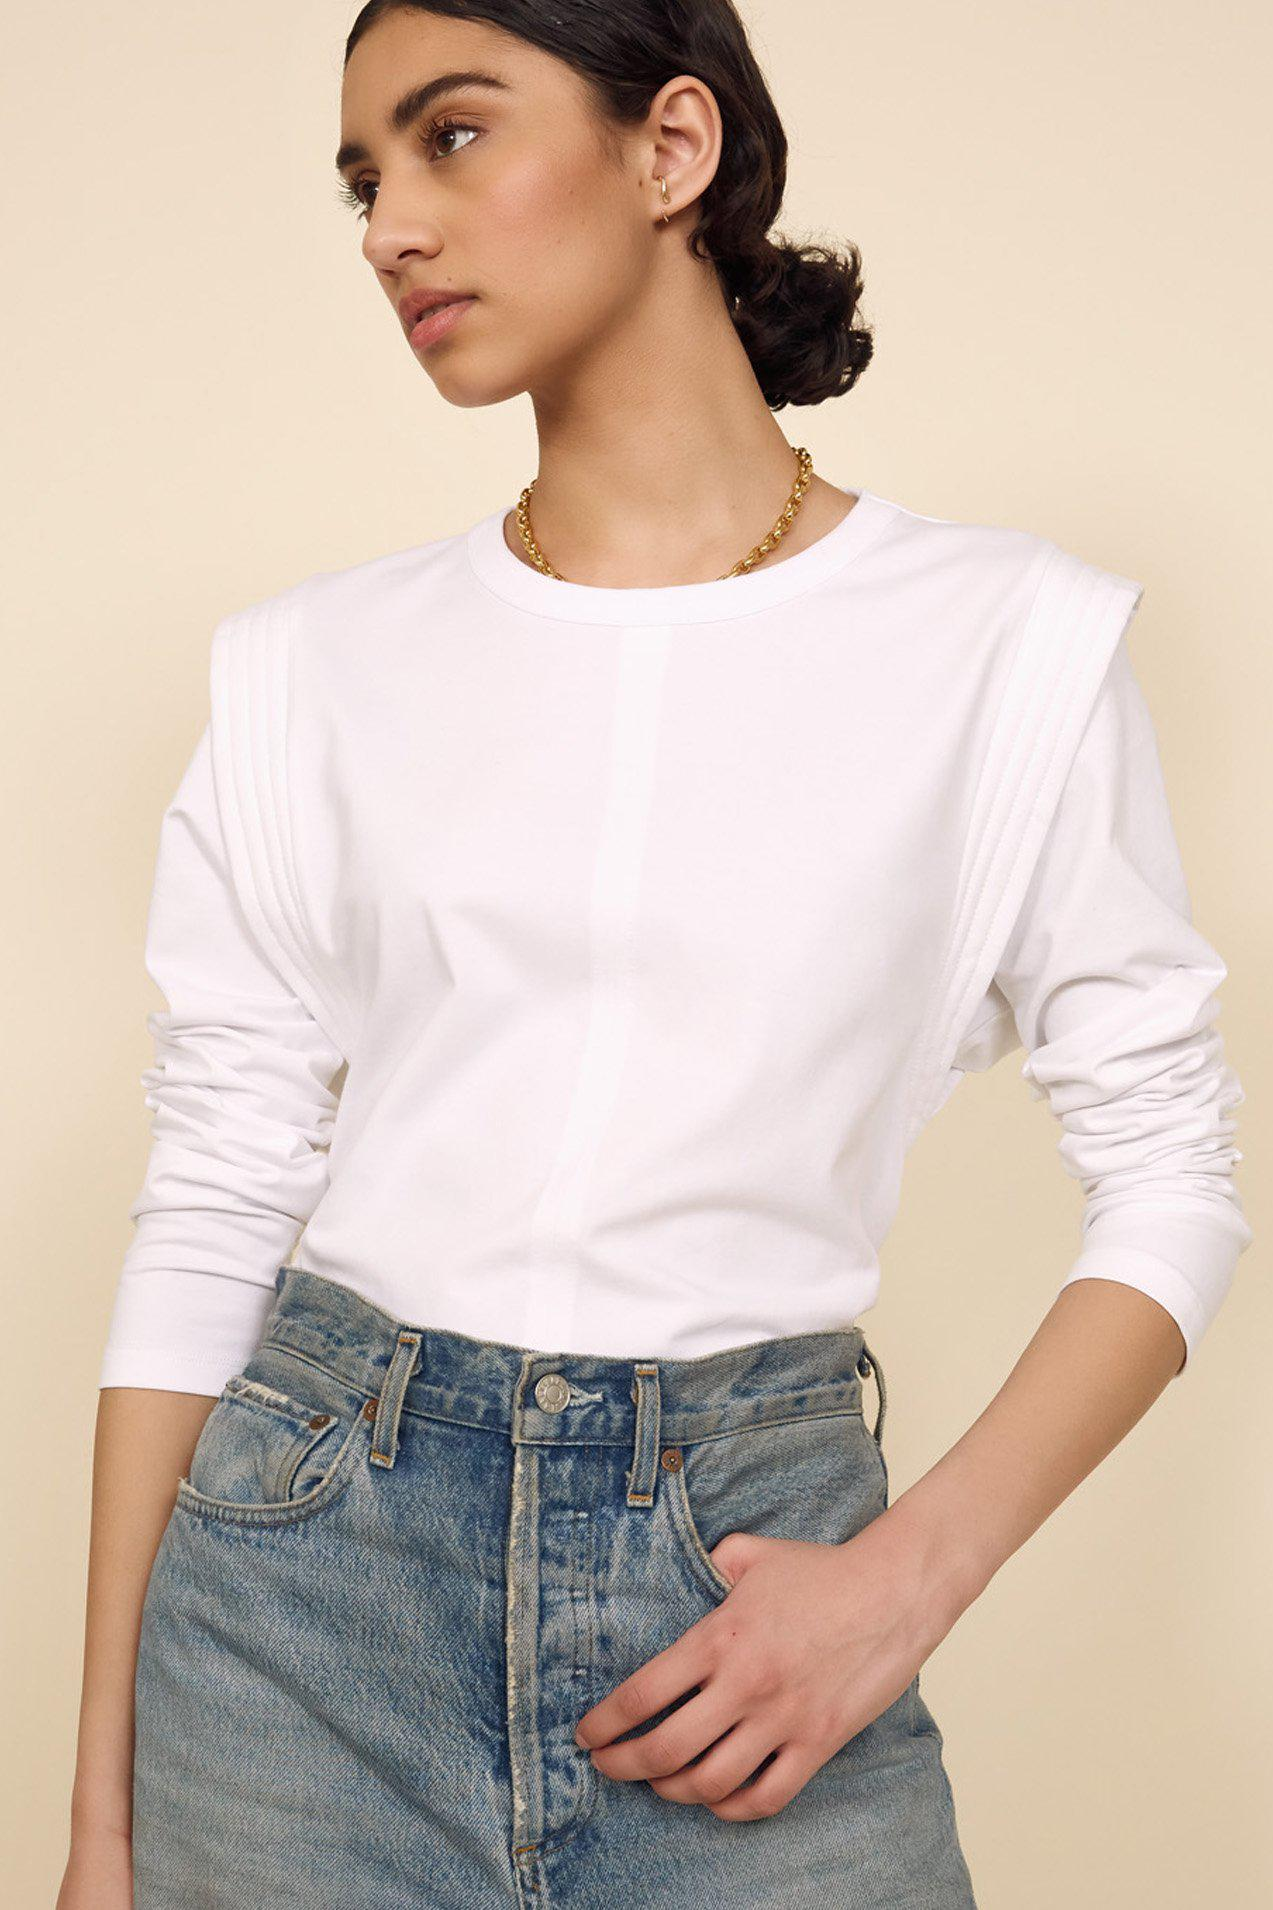 The Long Sleeve Gimme That Shoulder Tee